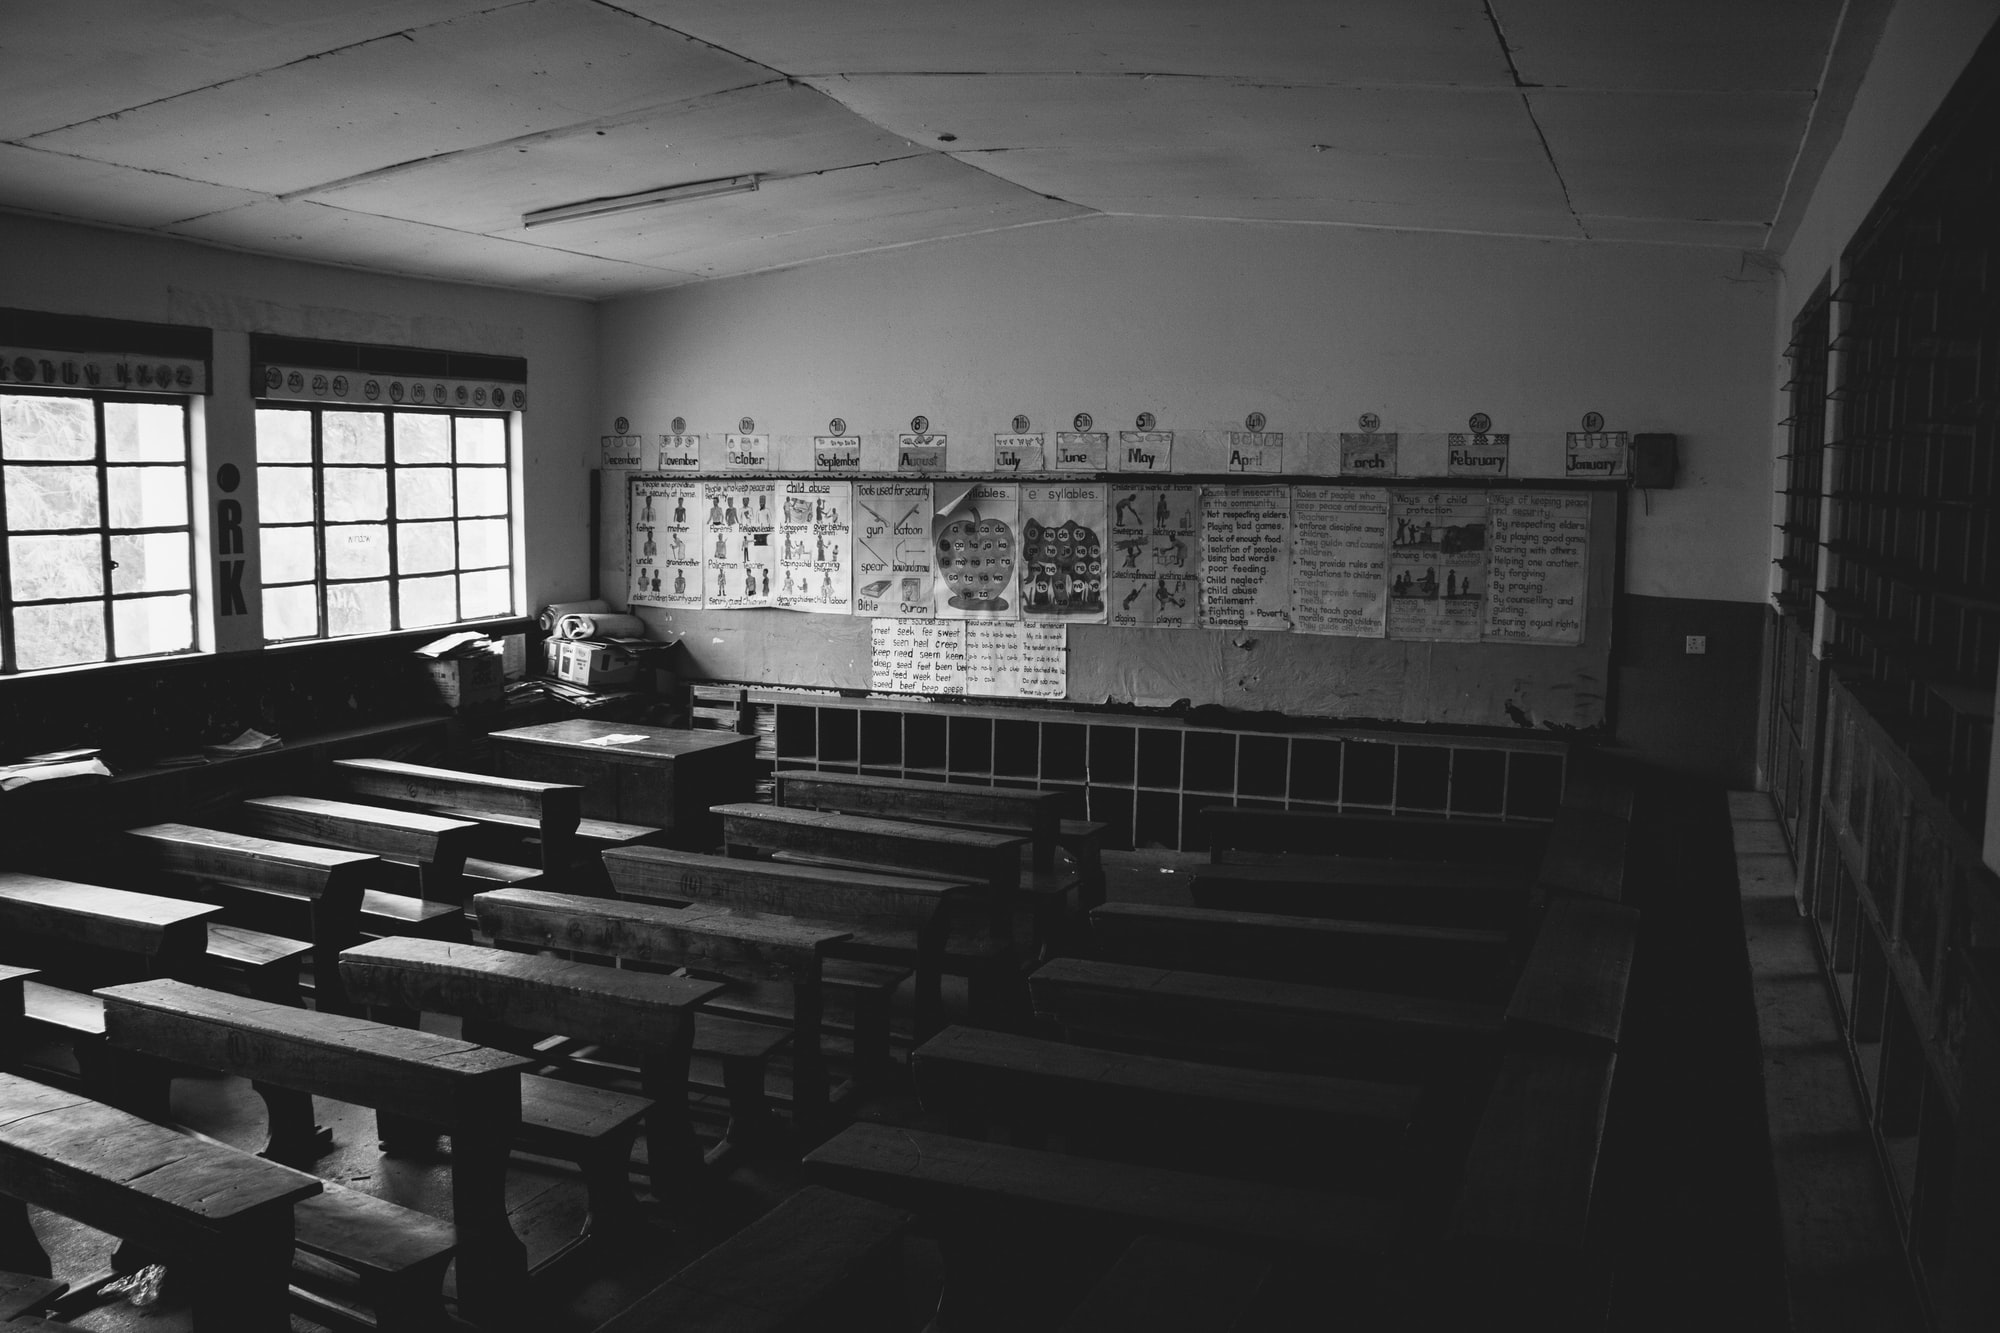 How can government aid in improving school infrastructure?